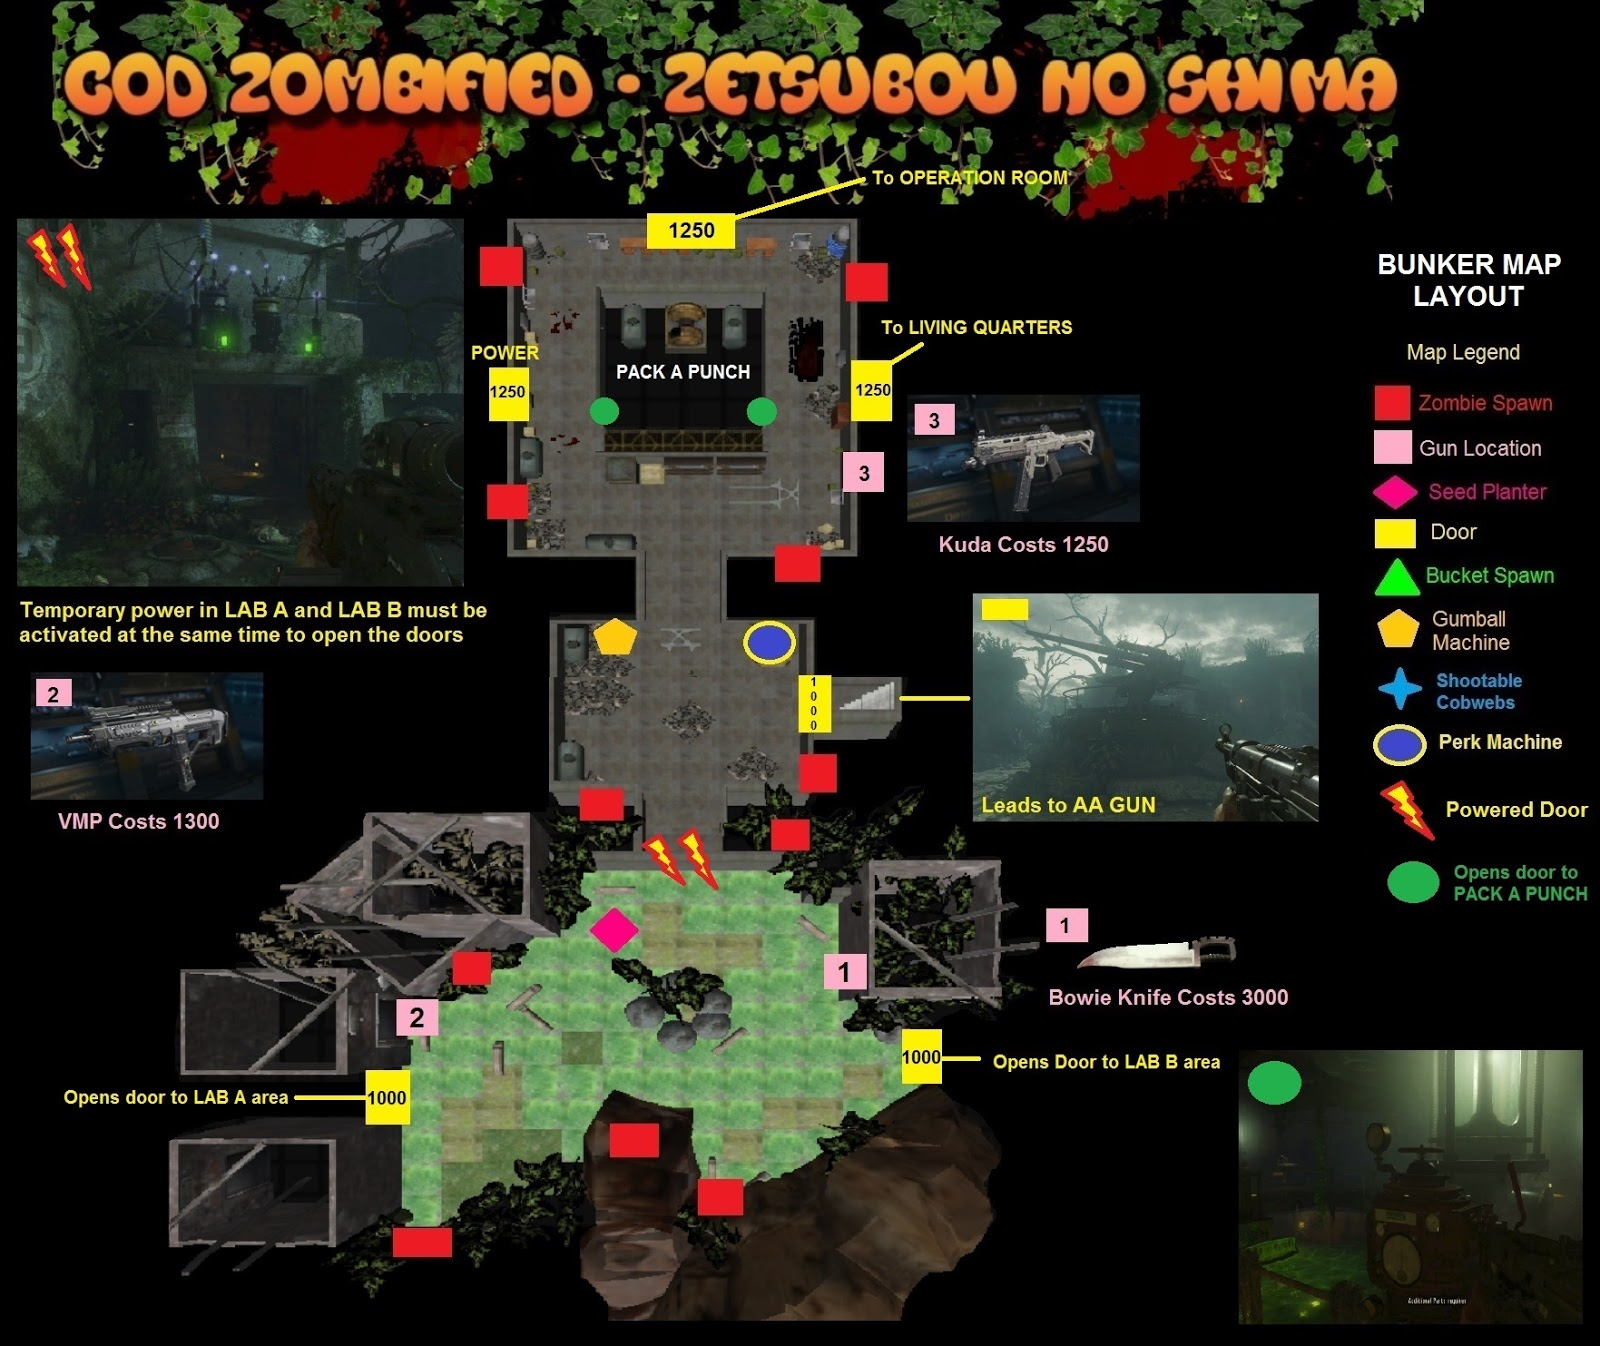 Zombified call of duty zombie map layouts secrets for Floor 5 boss map